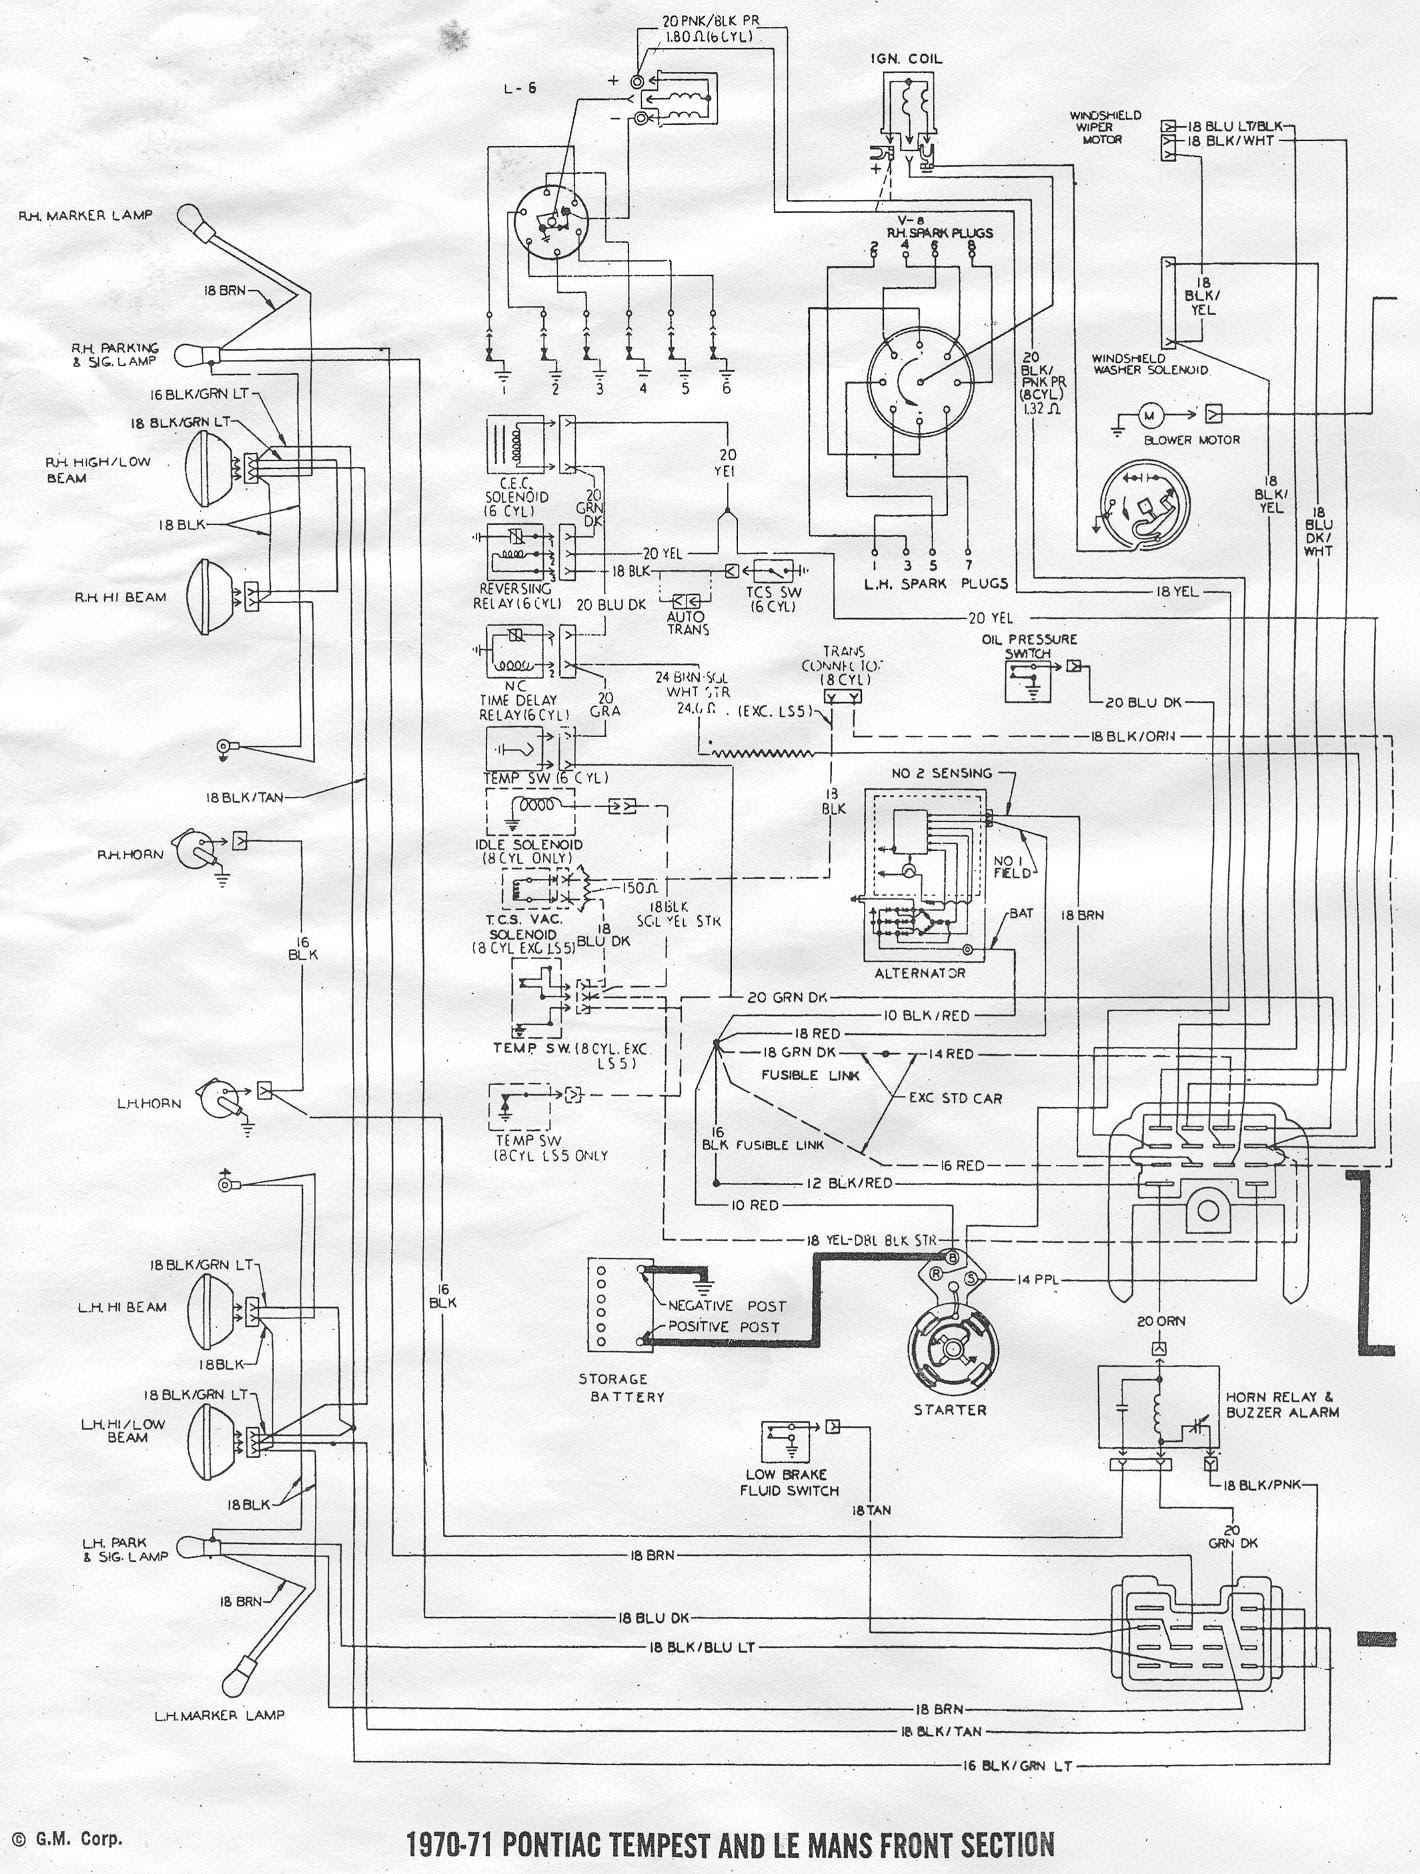 1966 pontiac wiring diagram - wiring diagram clear-upgrade-a -  clear-upgrade-a.agriturismoduemadonne.it  agriturismoduemadonne.it